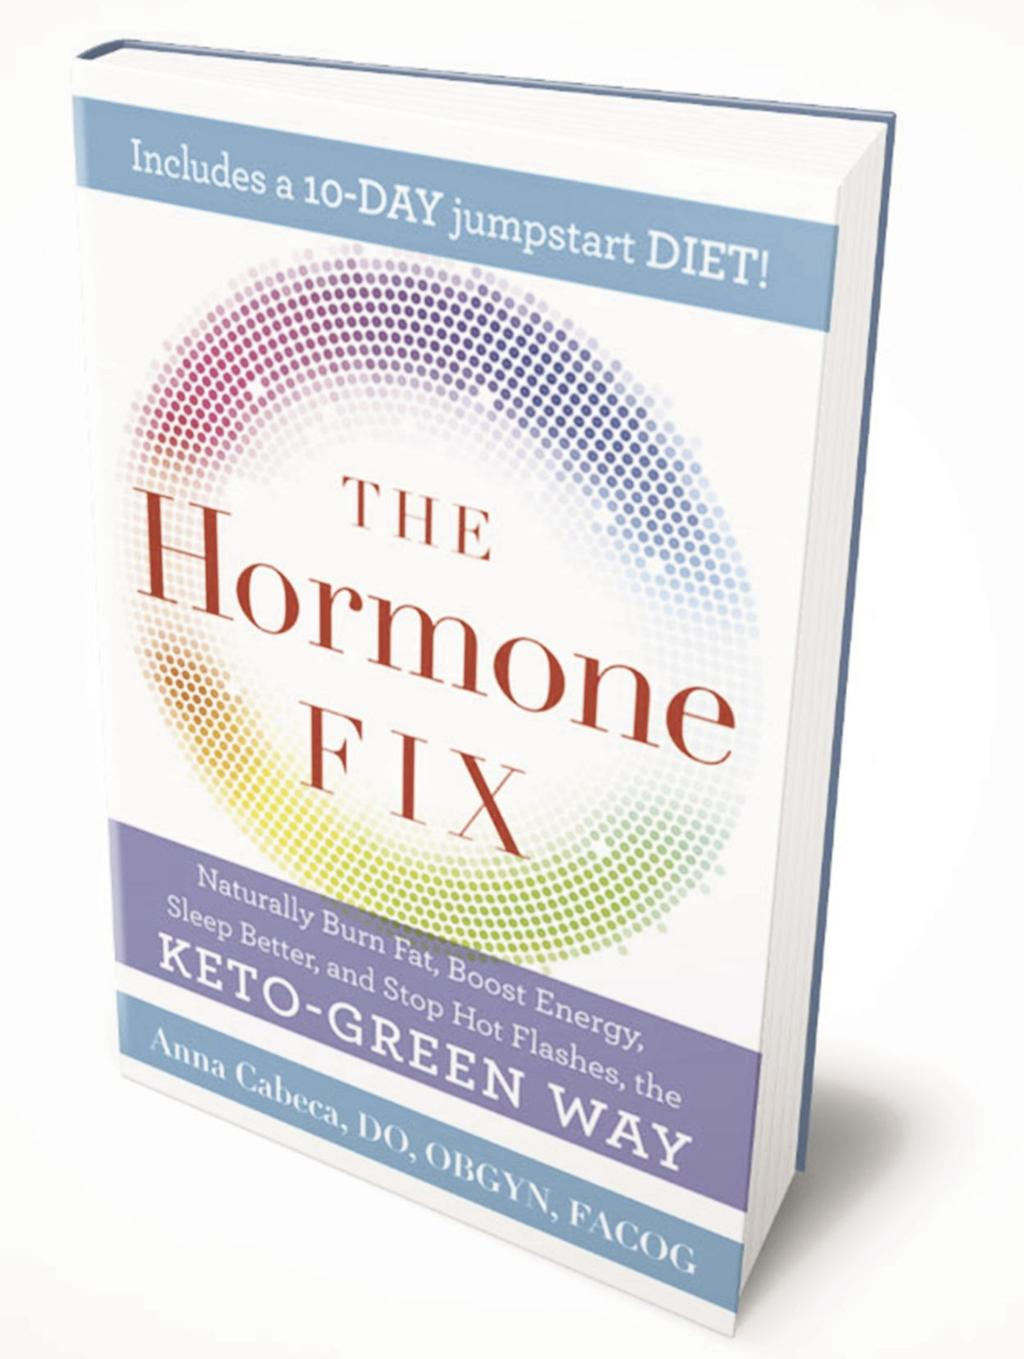 hot flashes on keto diet